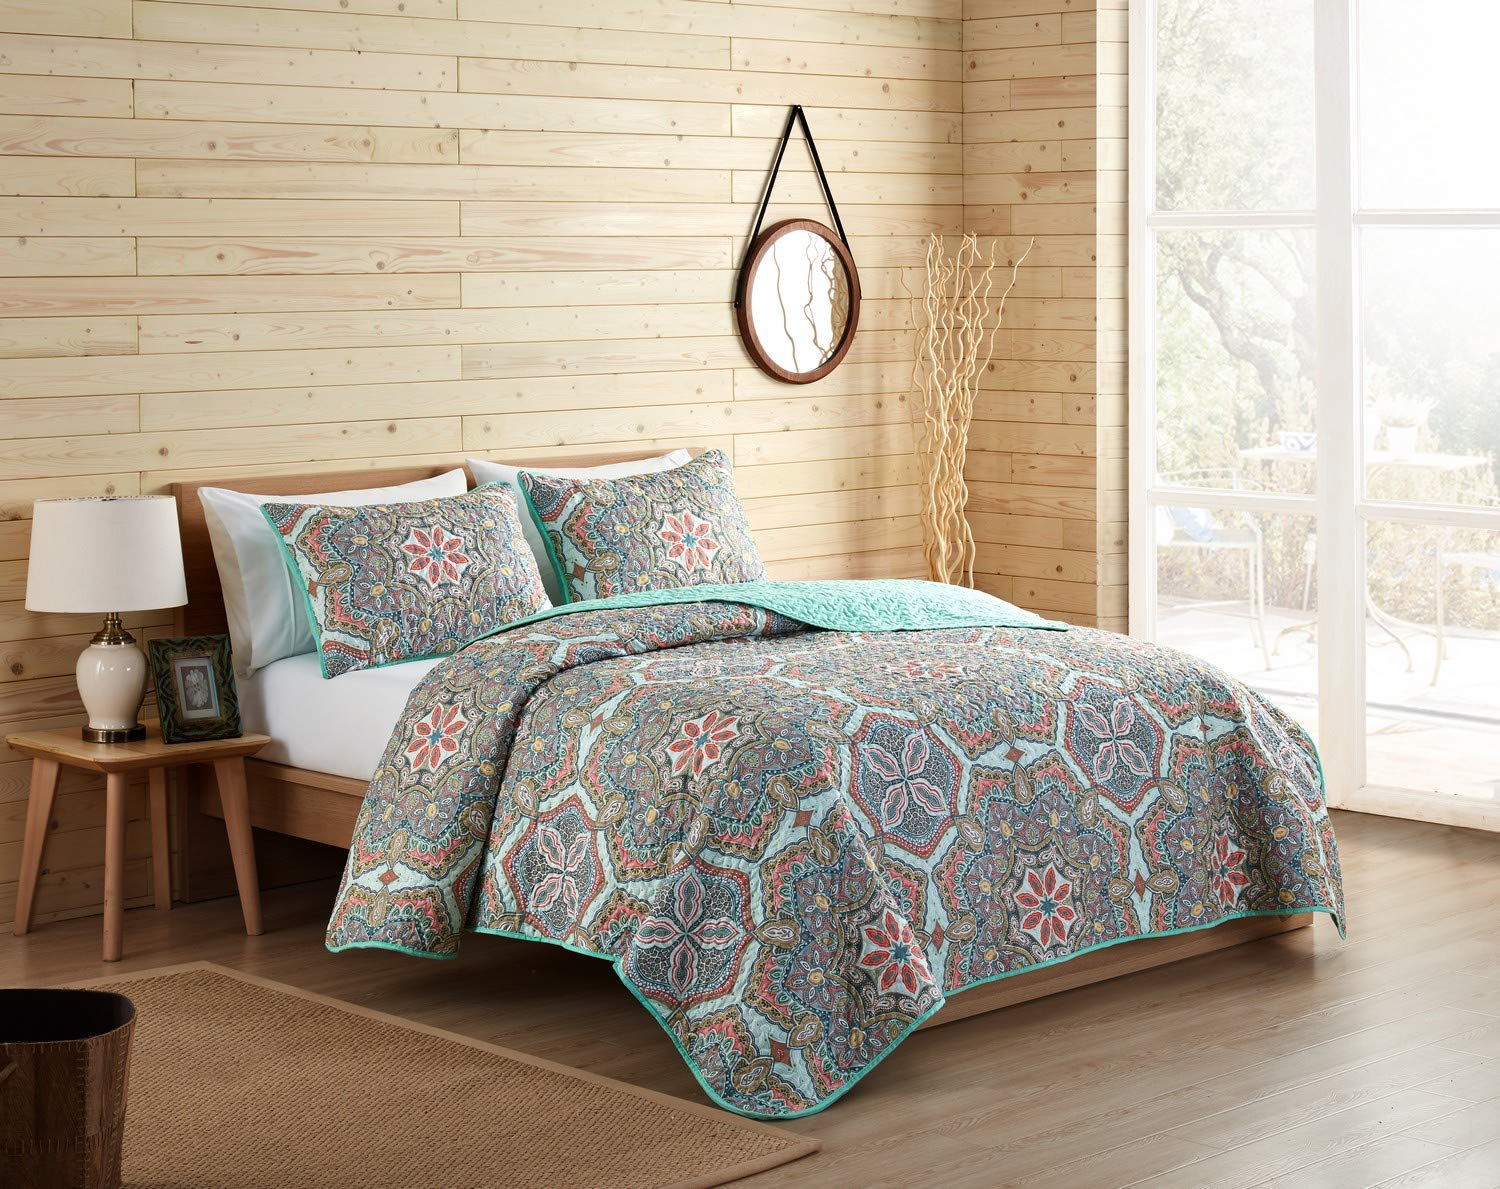 VCNY Home Yara 3-Piece Reversible, King, Multi